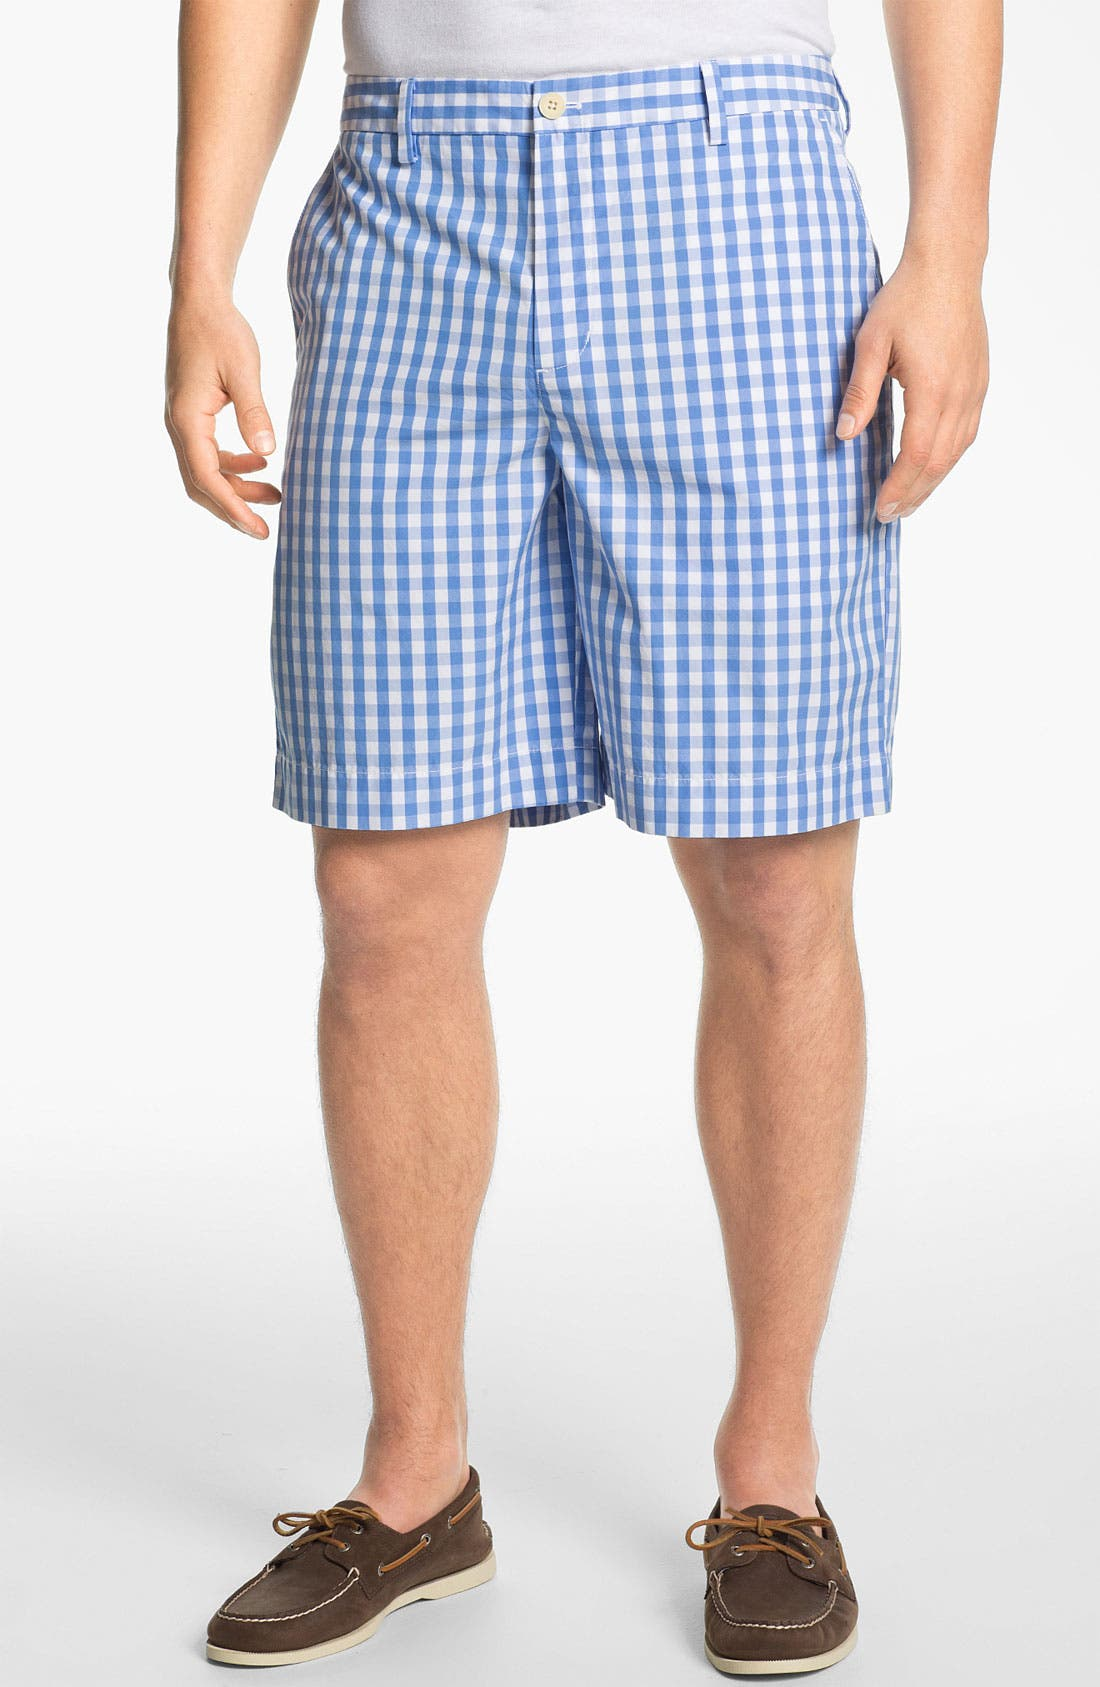 Alternate Image 1 Selected - Vineyard Vines 'Breakers' Poplin Shorts